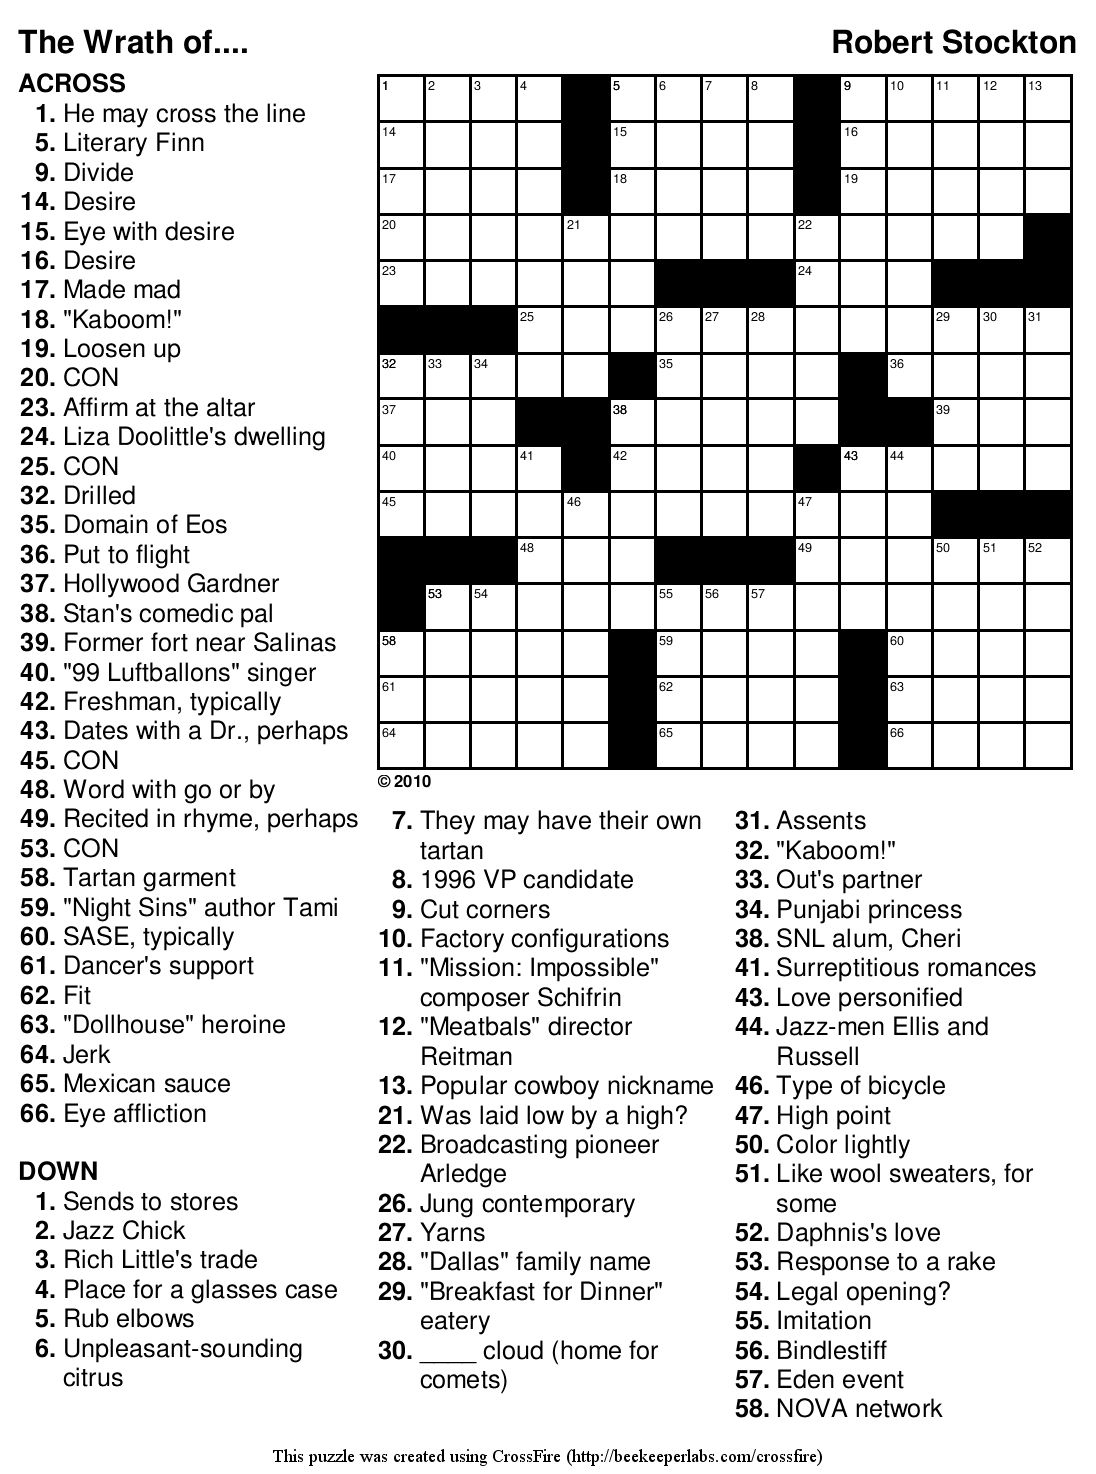 Marvelous Crossword Puzzles Easy Printable Free Org | Chas's Board - Easy Crossword Puzzles With Answers Printable